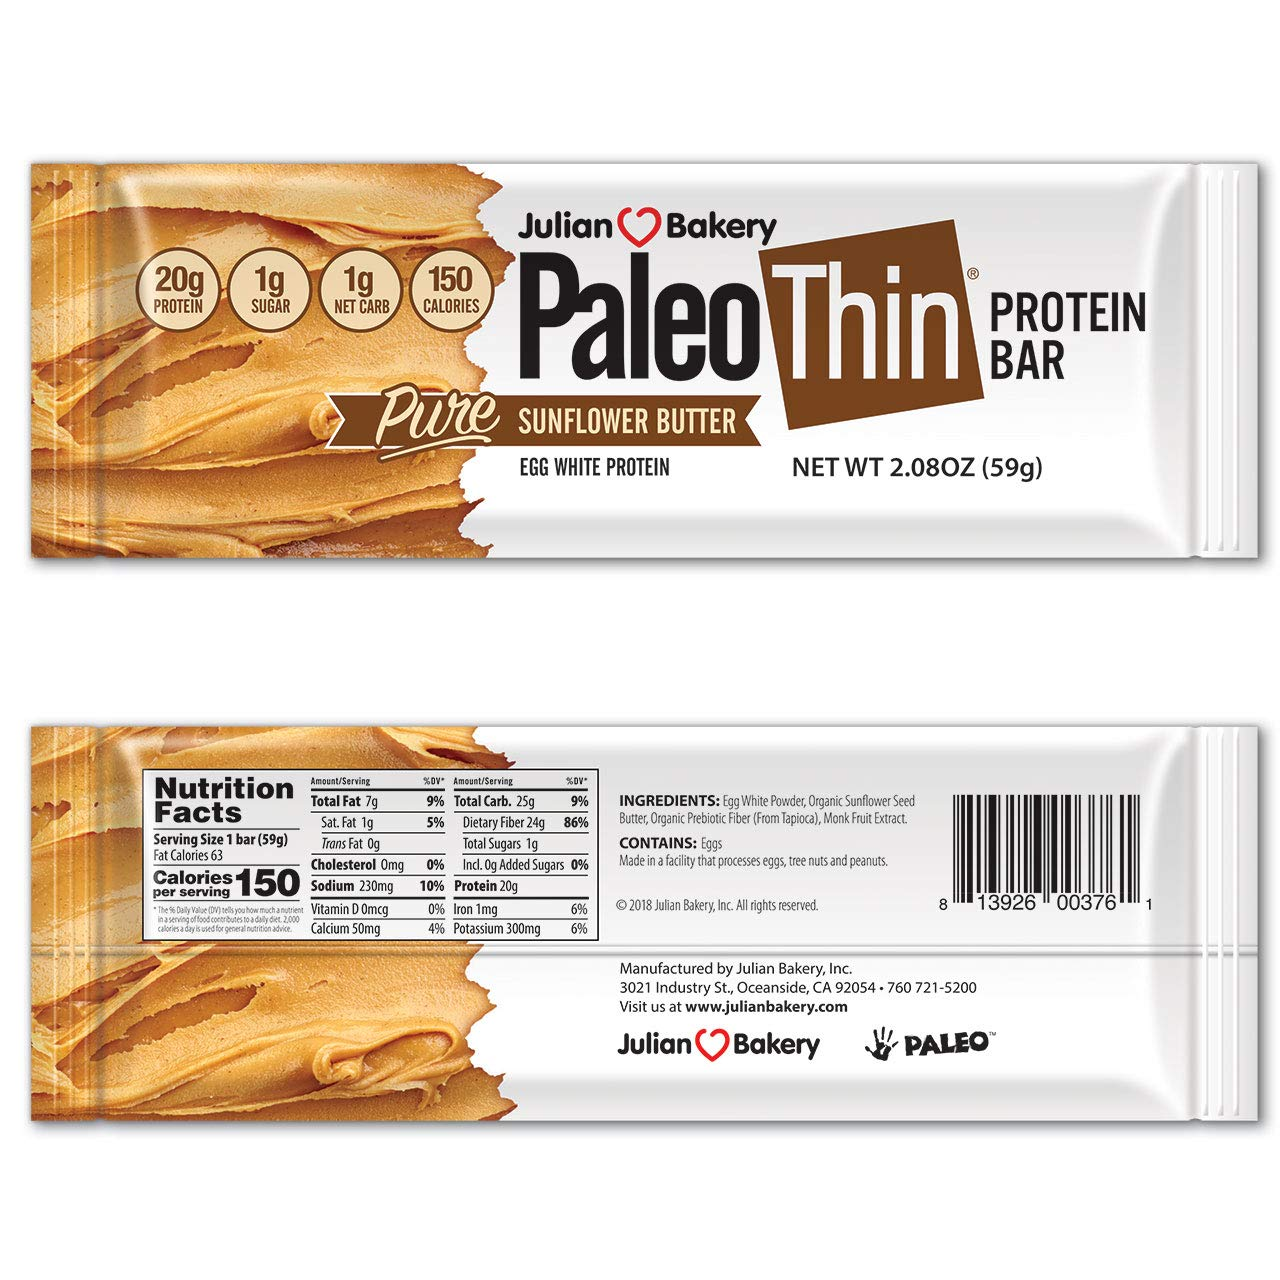 Paleo Thin® Protein Bar (Sunflower Butter) (150 Cal)(20g Protein)(Egg White)(1 Net Carb)(4 Ingredients)(1g Sugar)(10 Bars) by Julian Bakery